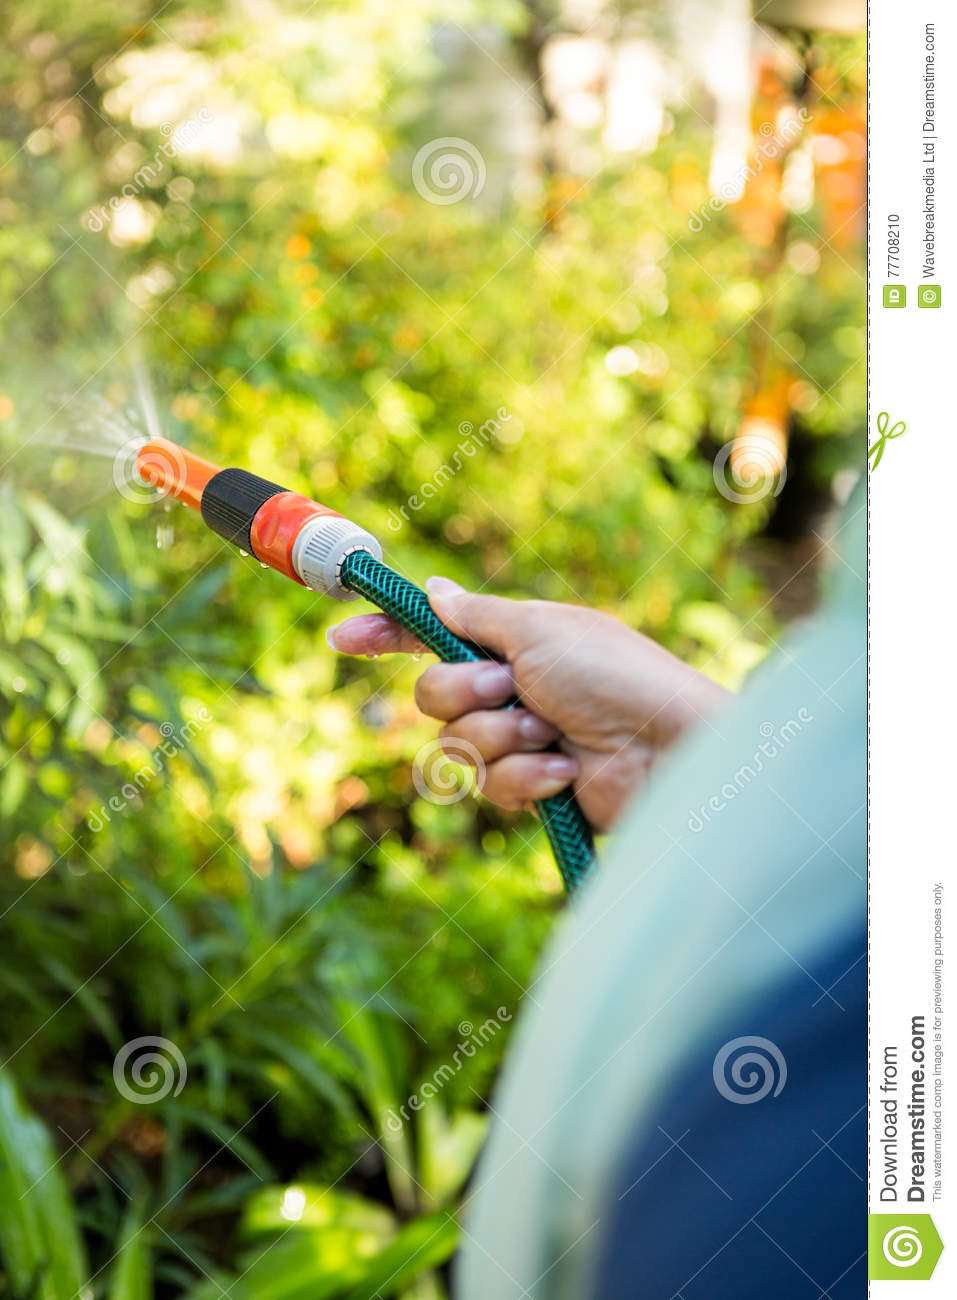 Cropped image of gardener watering from hose at garden